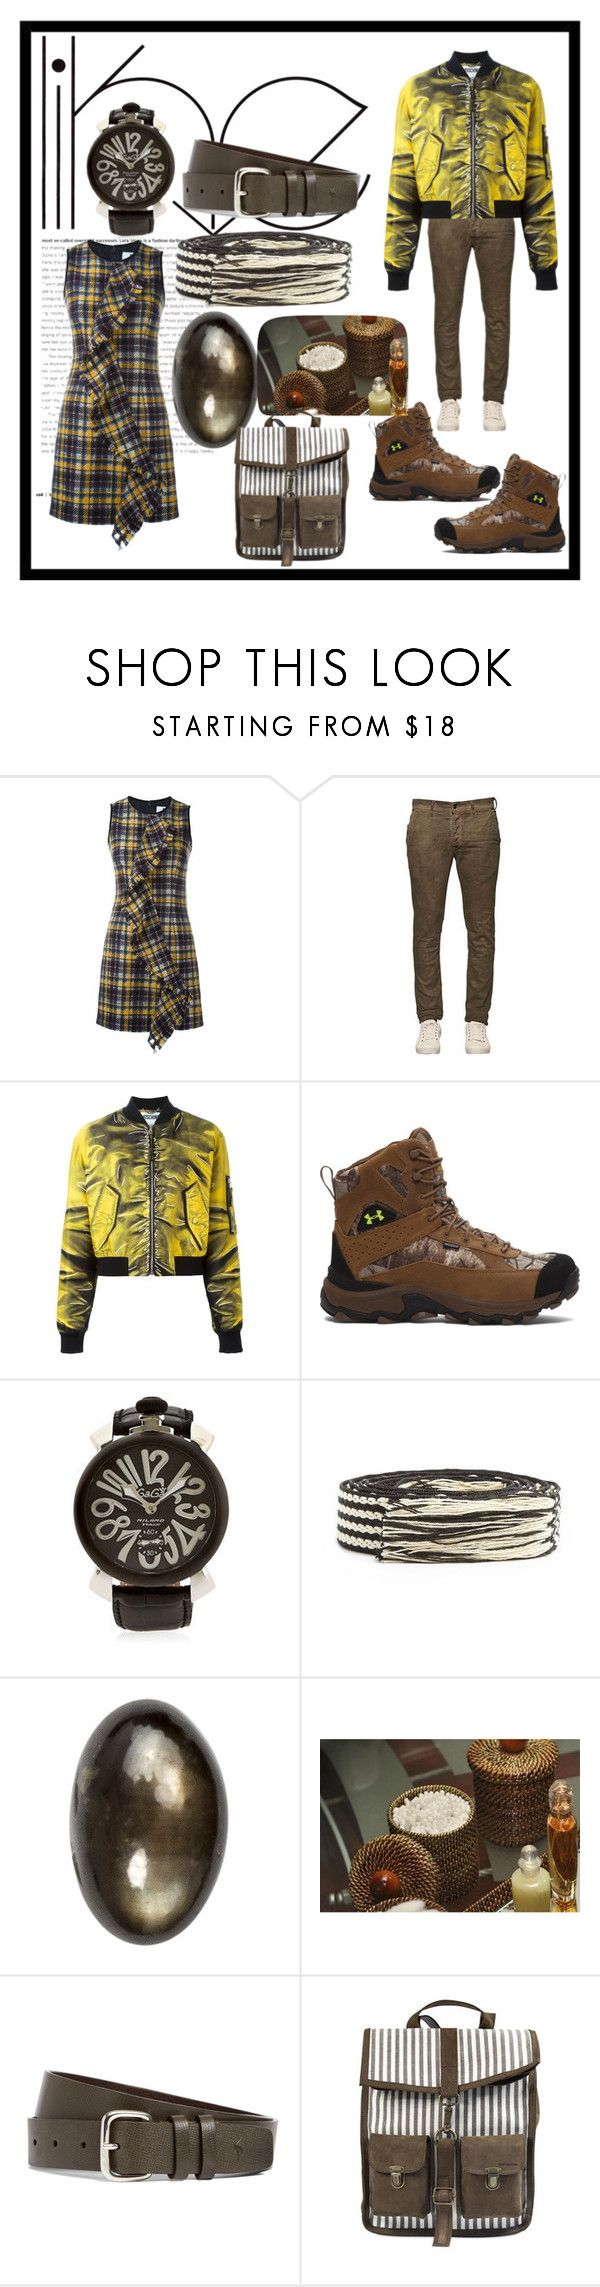 """""""best sale offer"""" by denisee-denisee ❤ liked on Polyvore featuring MSGM, Diesel, Moschino, Under Armour, GaGà Milano, Étoile Isabel Marant, Loquet, Brooks Brothers, Kjøre Project and vintage"""